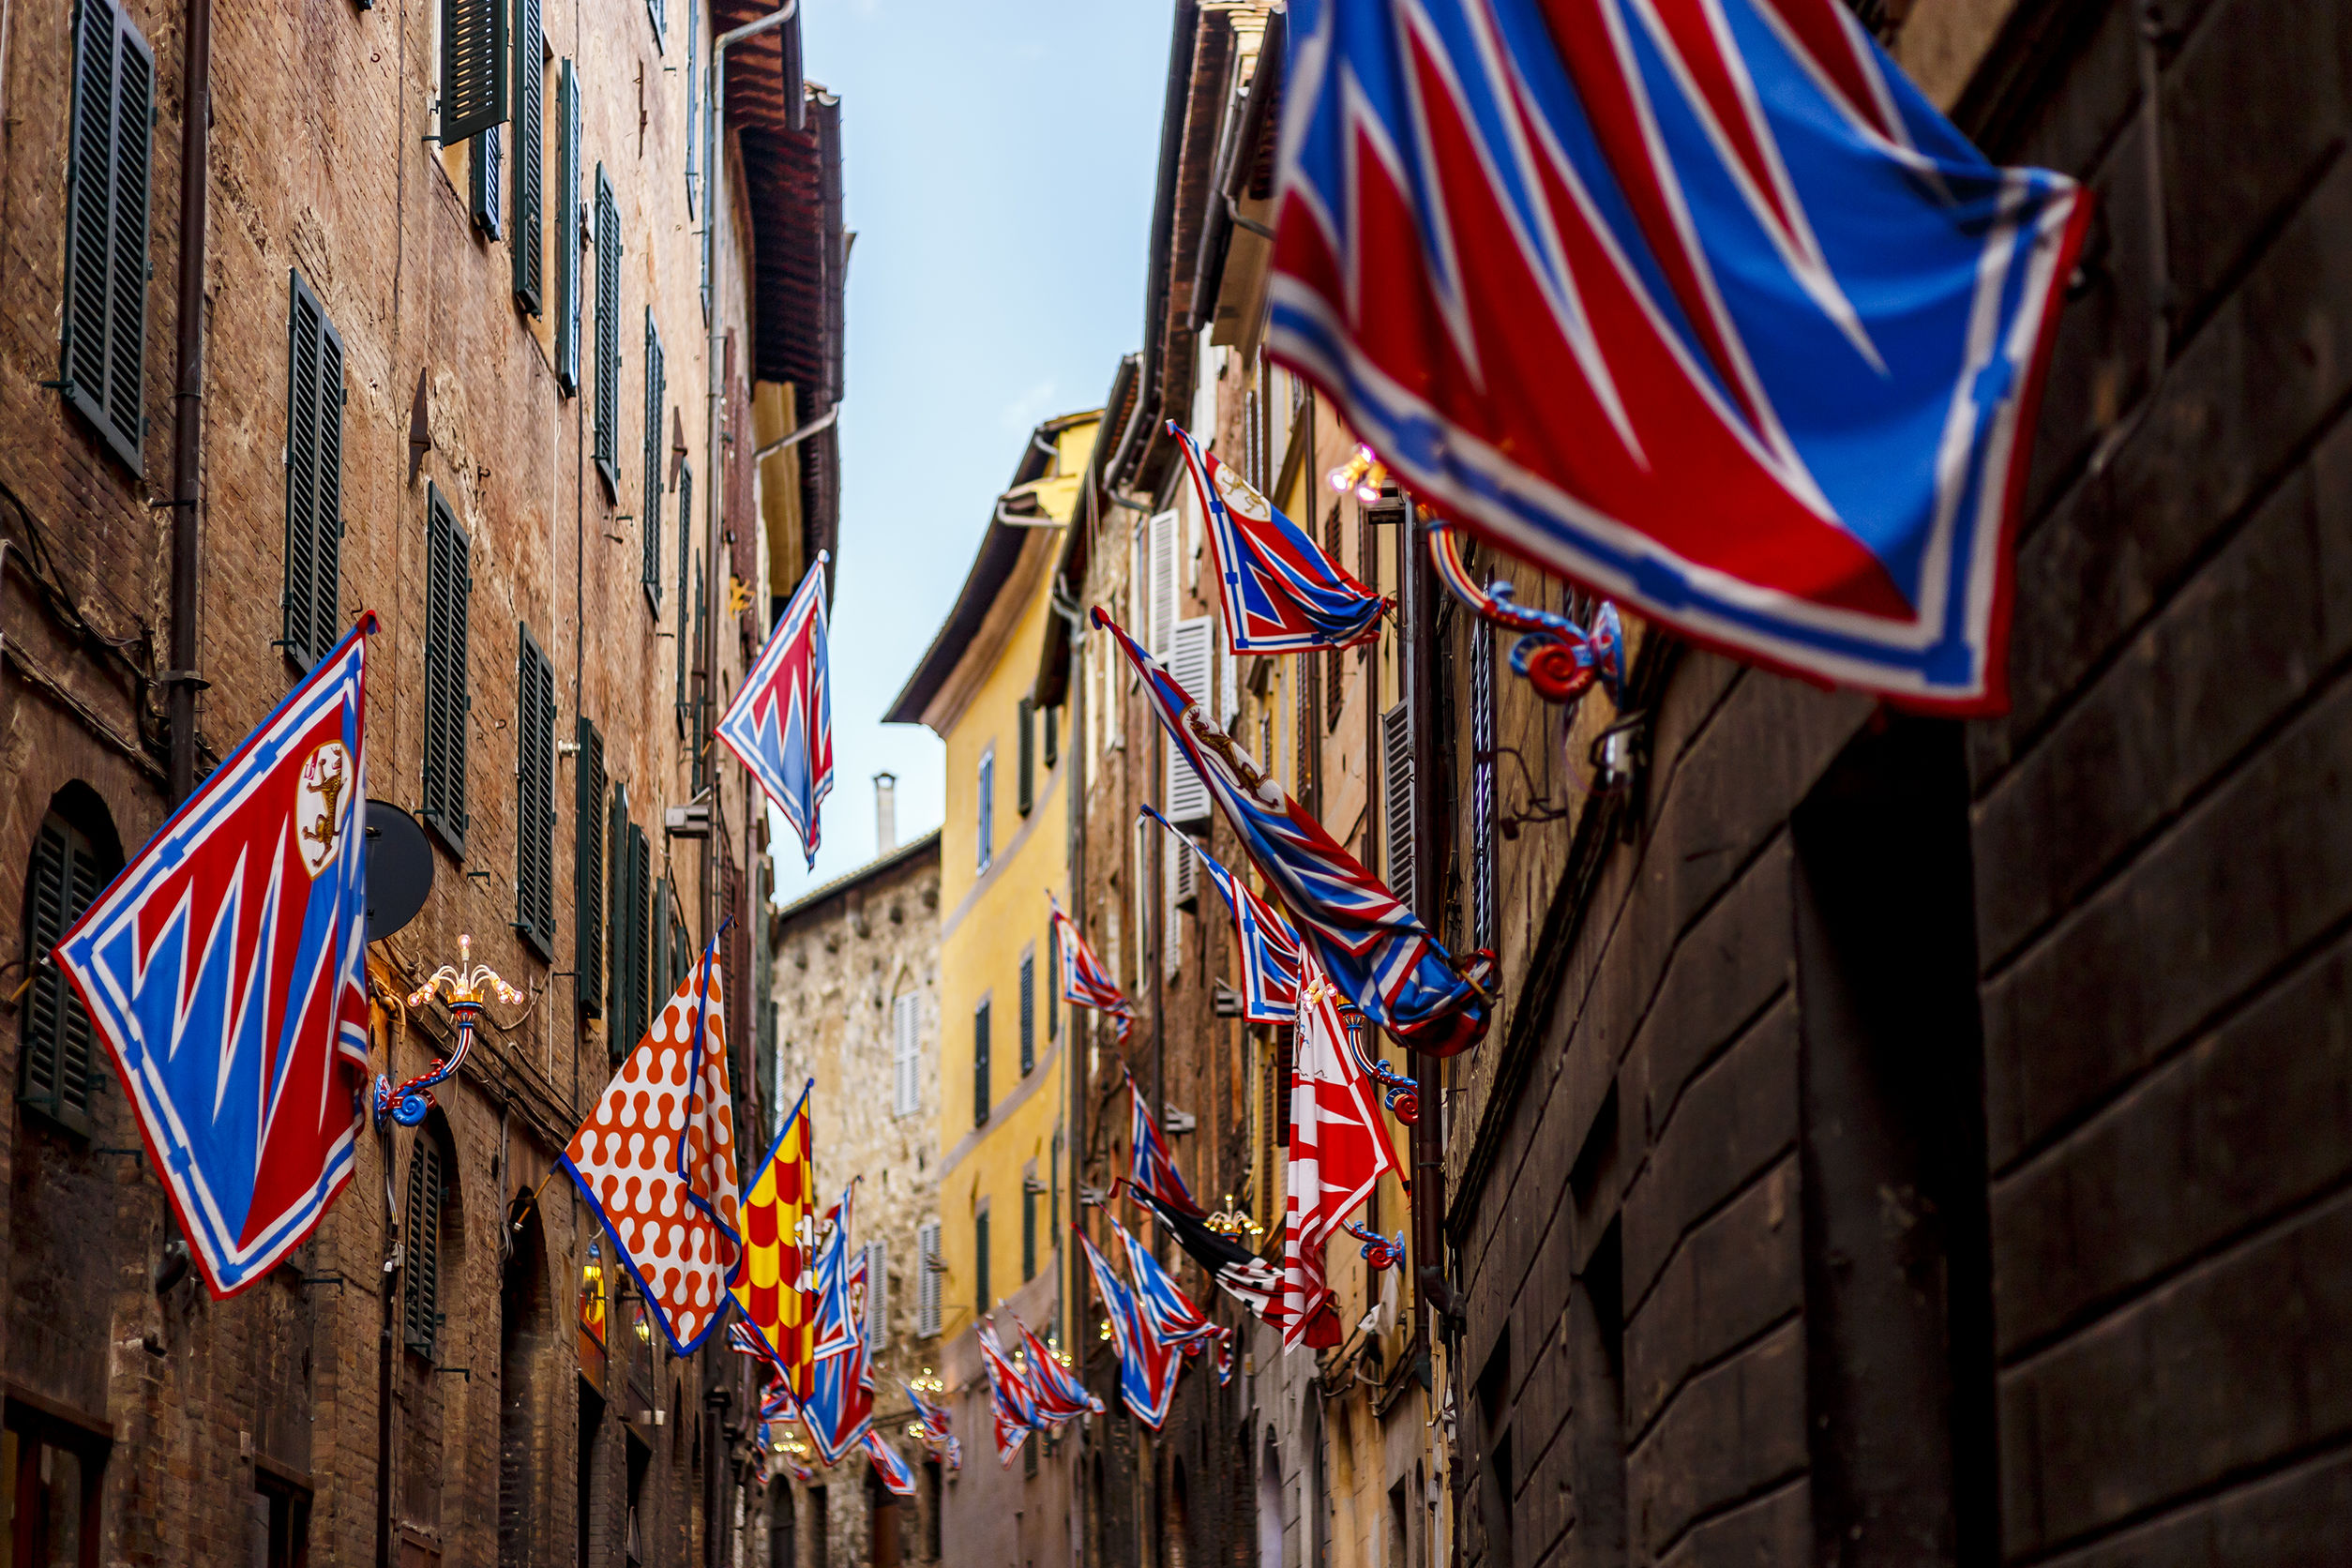 Banners of the contrads in Siena. Feast Palio. Region of Tuscany, Italy